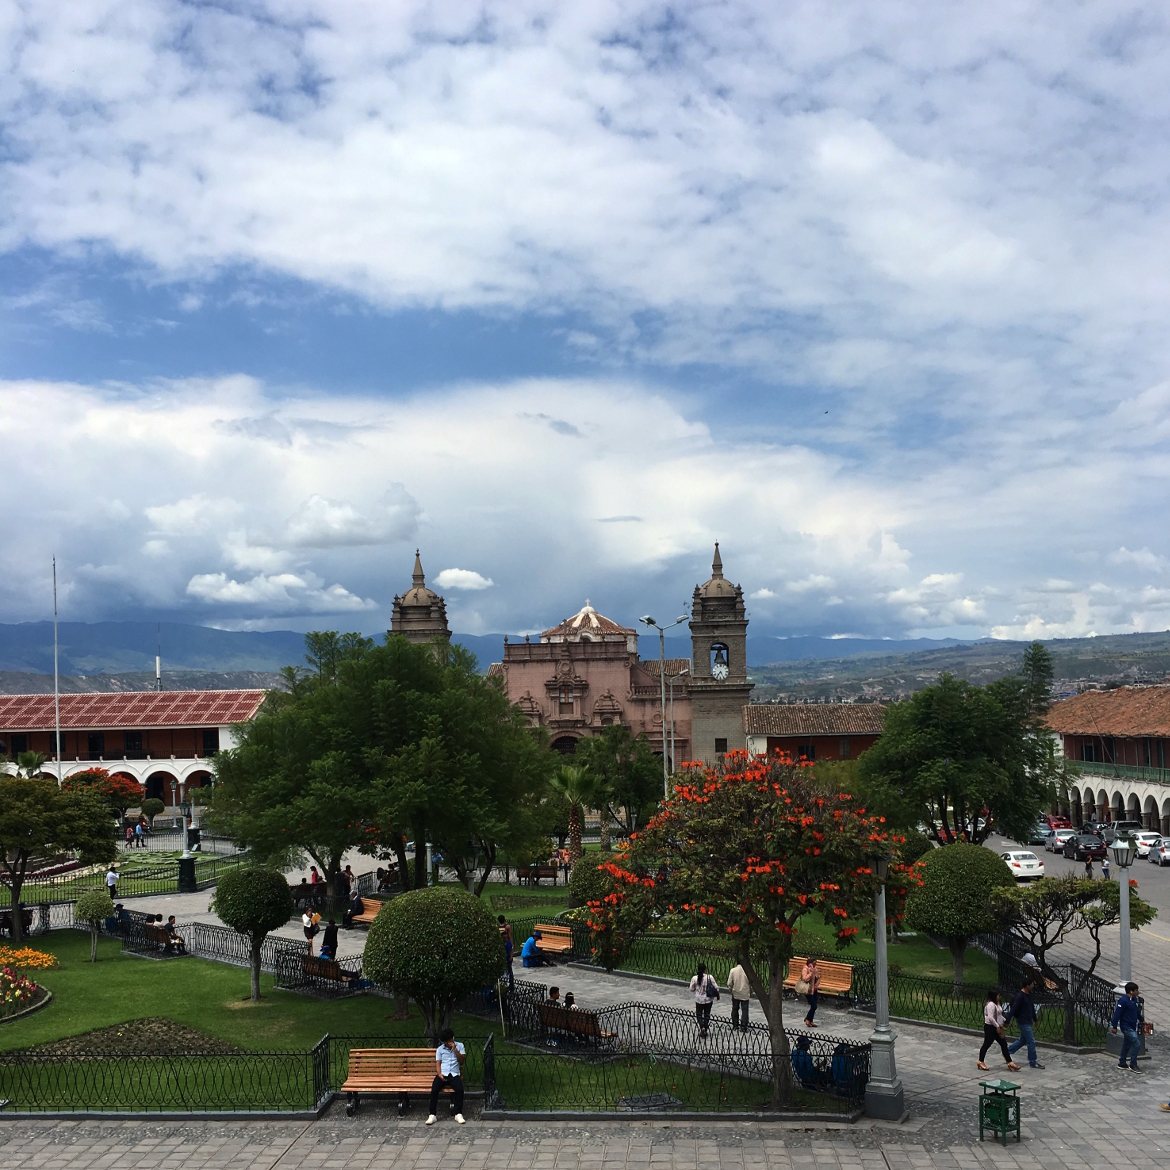 PERU TRAVEL DIARY PART II: PROJECTS, ROUTINES, & ADVENTURES